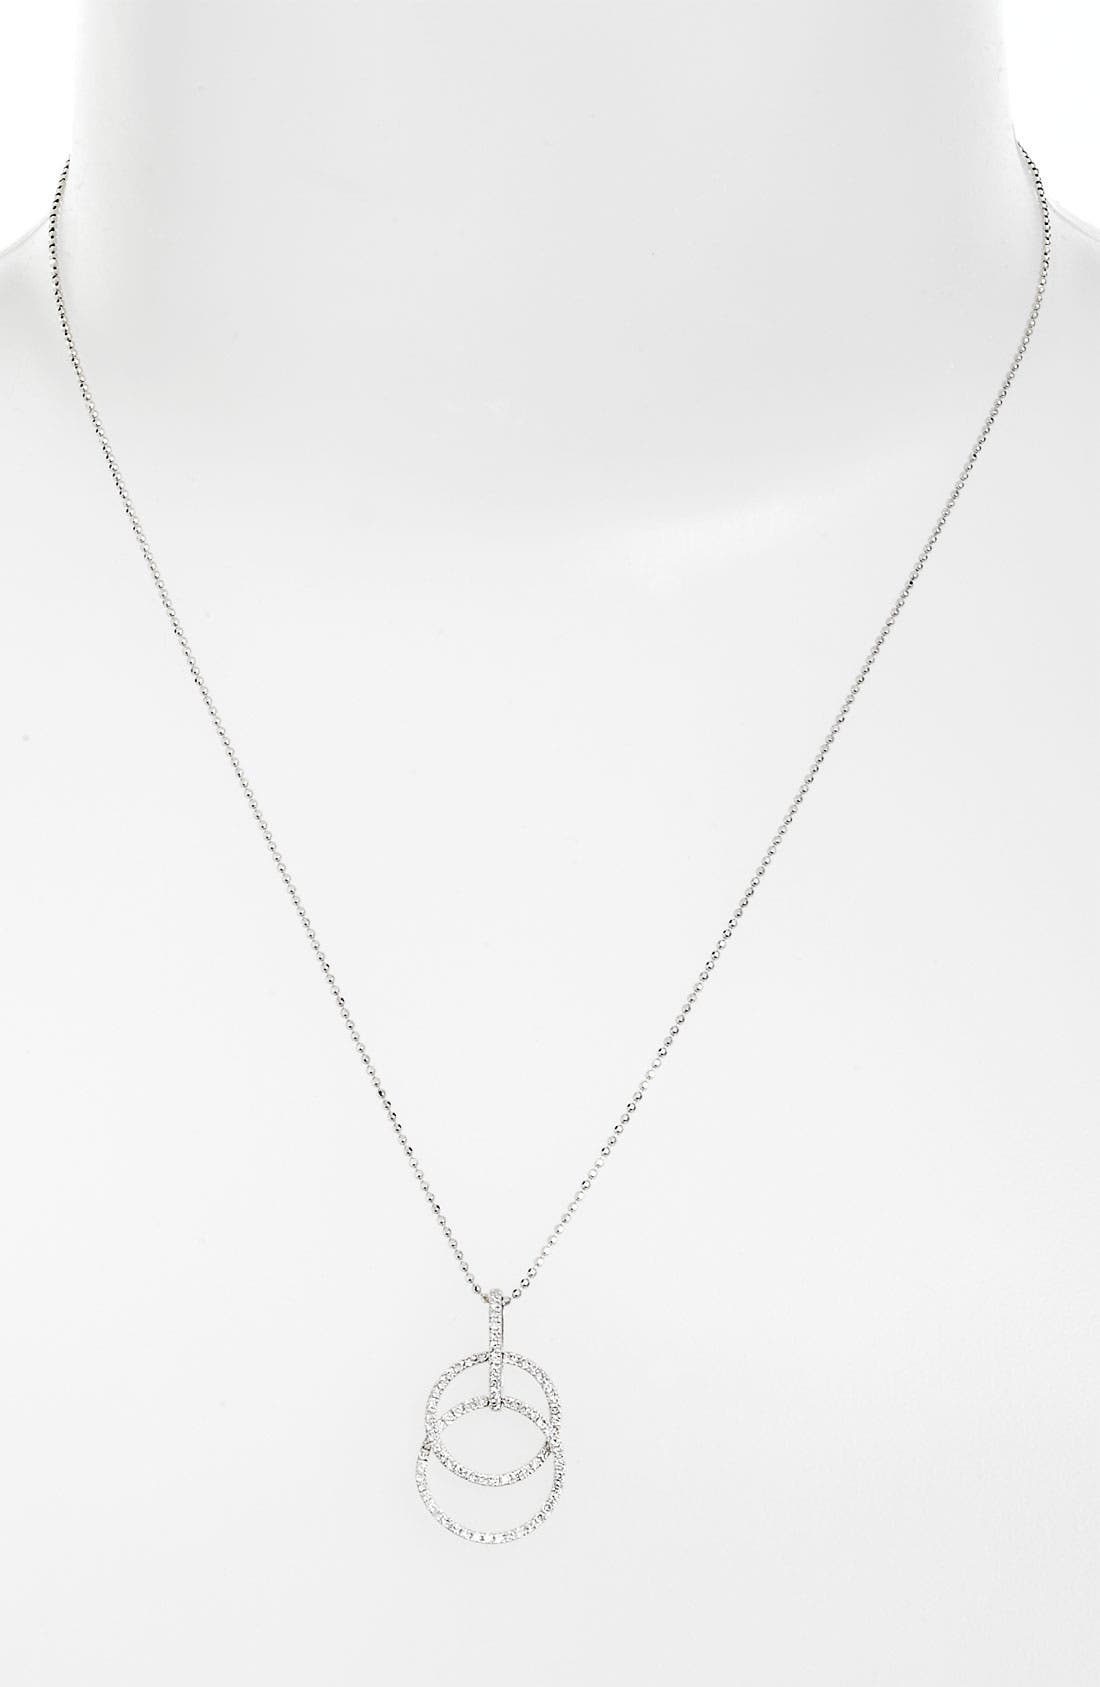 Alternate Image 1 Selected - Bony Levy 'Circle Links' Diamond Pendant Necklace (Nordstrom Exclusive)